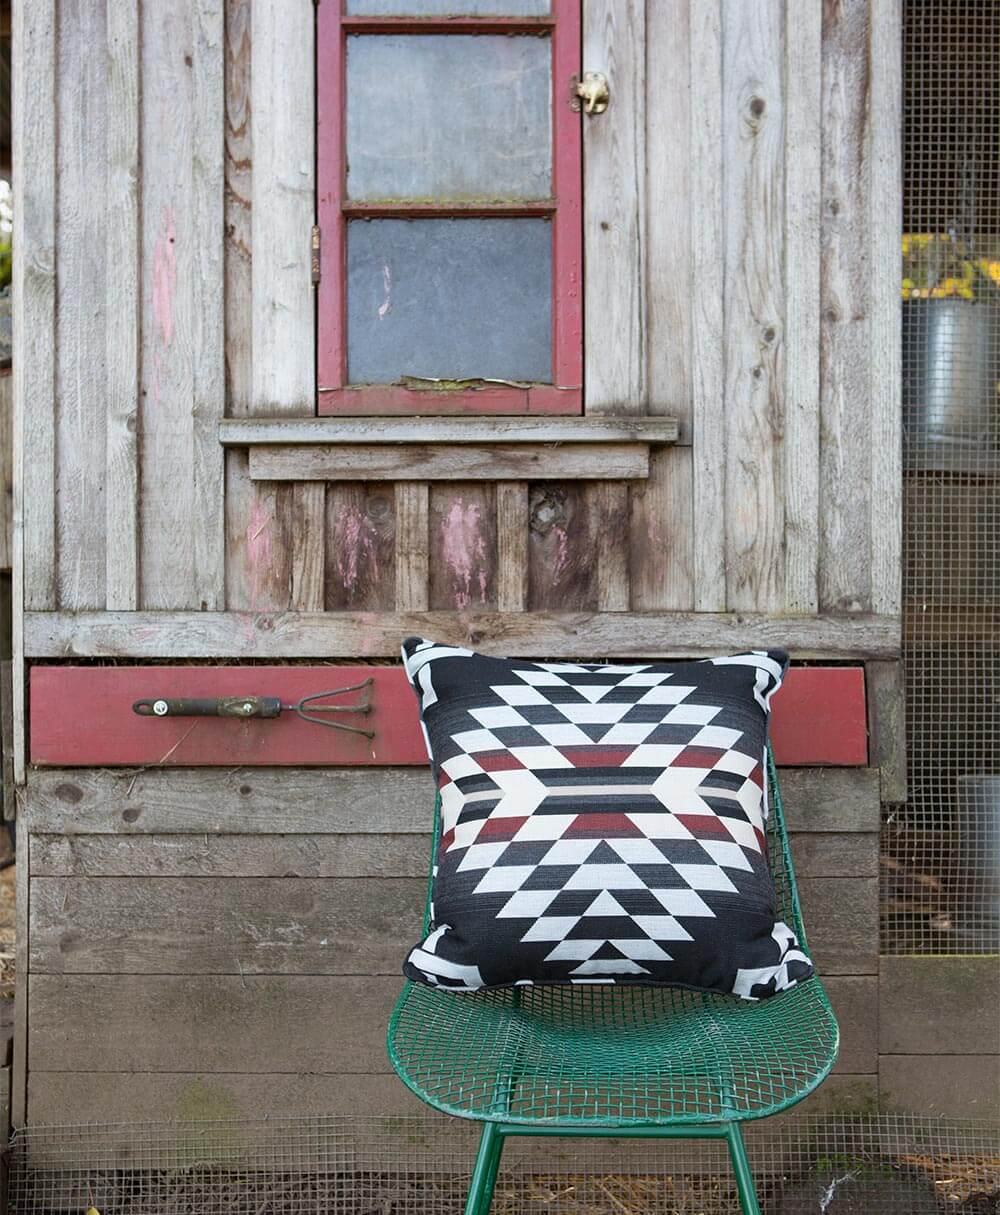 A large pillow made using a black and red pattern from the Pendleton by Sunbrella fabric collection sits outside on a chair.